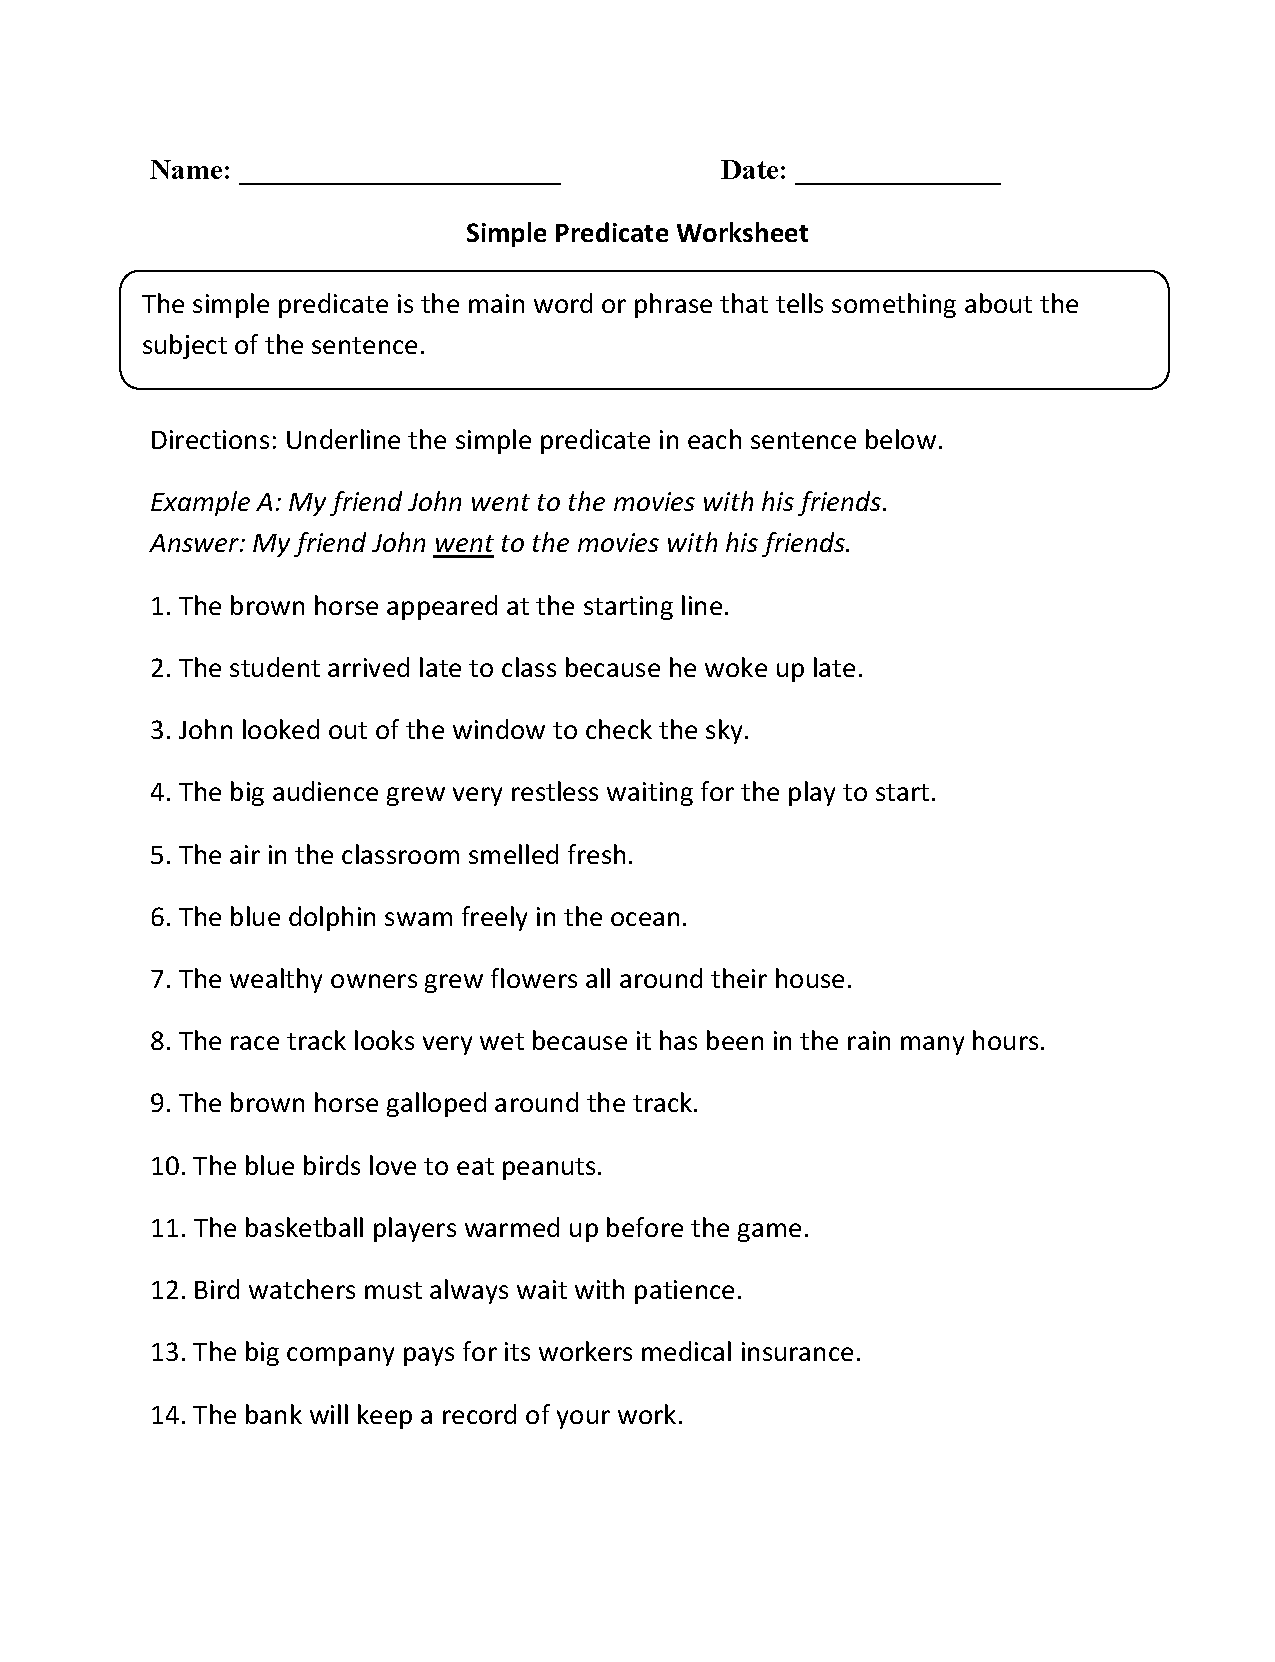 Simple Predicate Worksheet